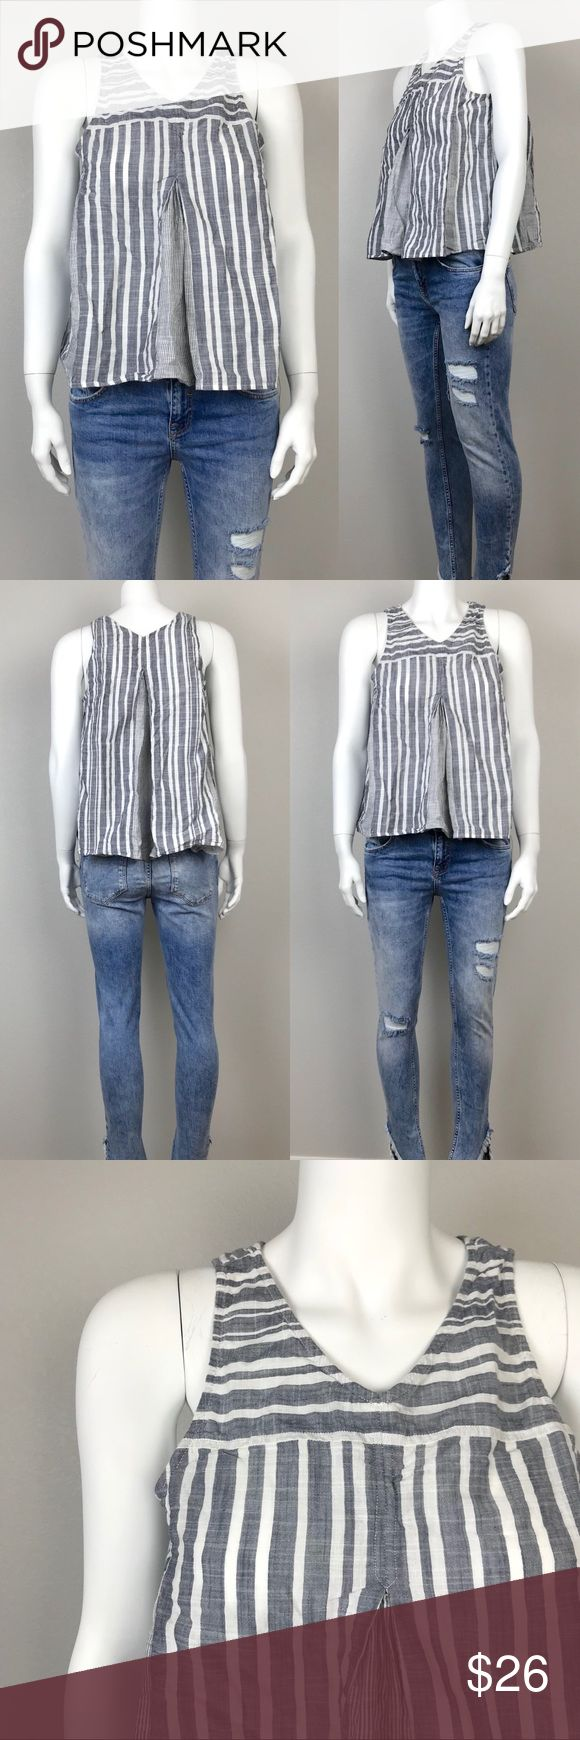 """Madewell Striped Sleeveless Tunic Top Madewell Striped Sleeveless Tunic Top.  White and grey striped print.  Size 6. Dimension (approximate): bust 36"""", length 21"""".  100% cotton. In good condition.  A stitch of the brand label has come off but the label is still attached to the garment..  #M027-11147 Follow us on Instagram @reshopofficial for promotion and discount. Madewell Tops"""